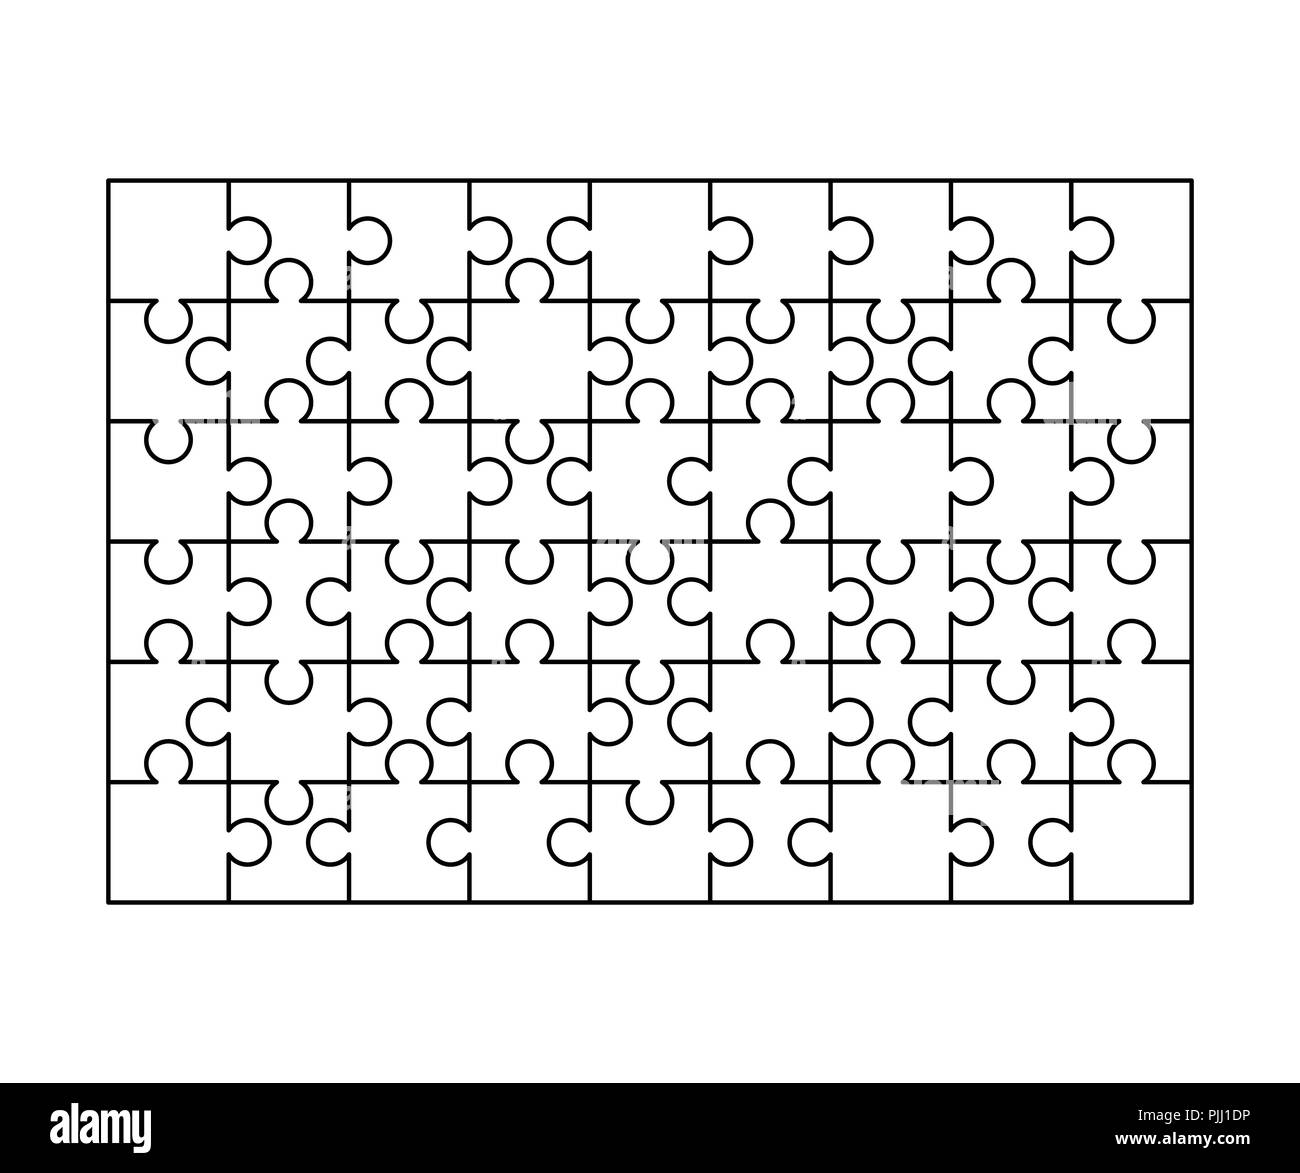 64 white puzzles pieces arranged in a square jigsaw puzzle template